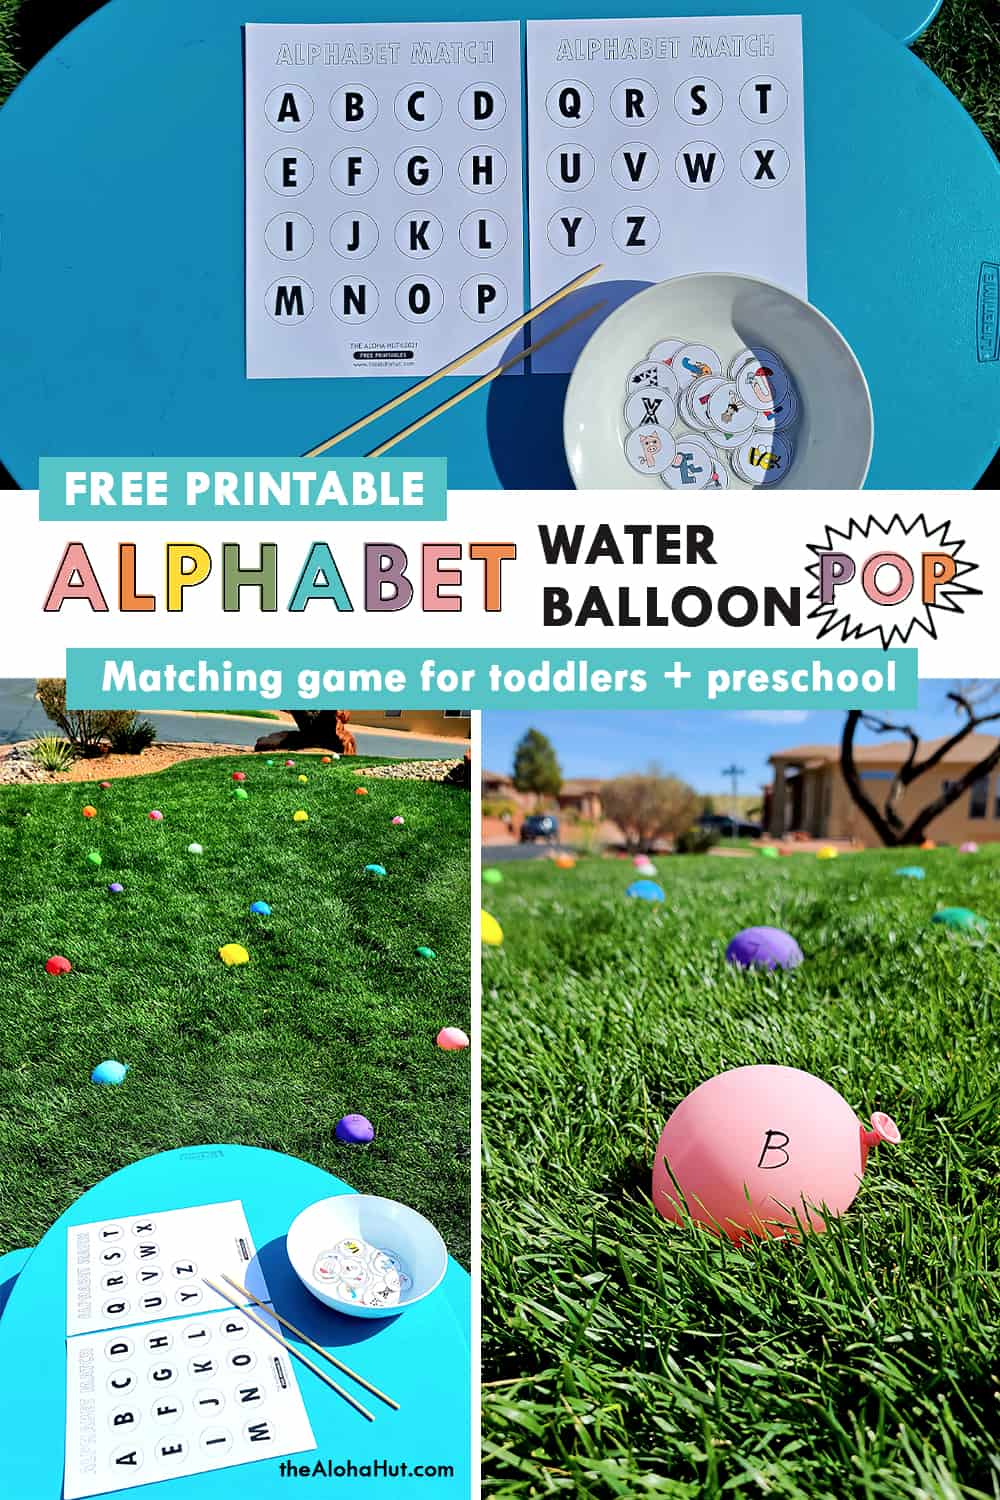 alphabet water balloon pop game by the Aloha Hut